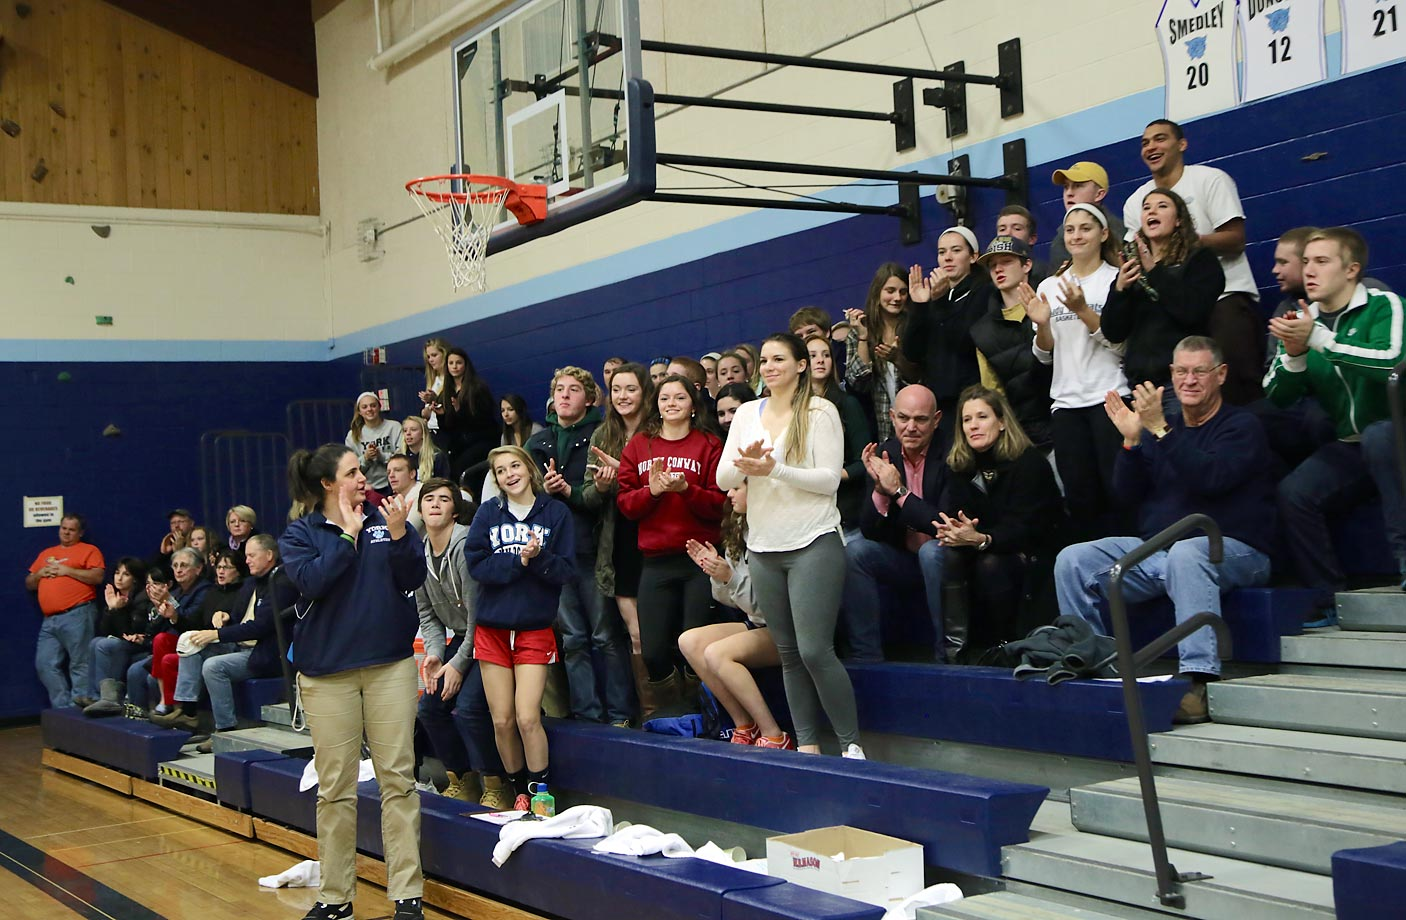 York High students give Kate a standing ovation.